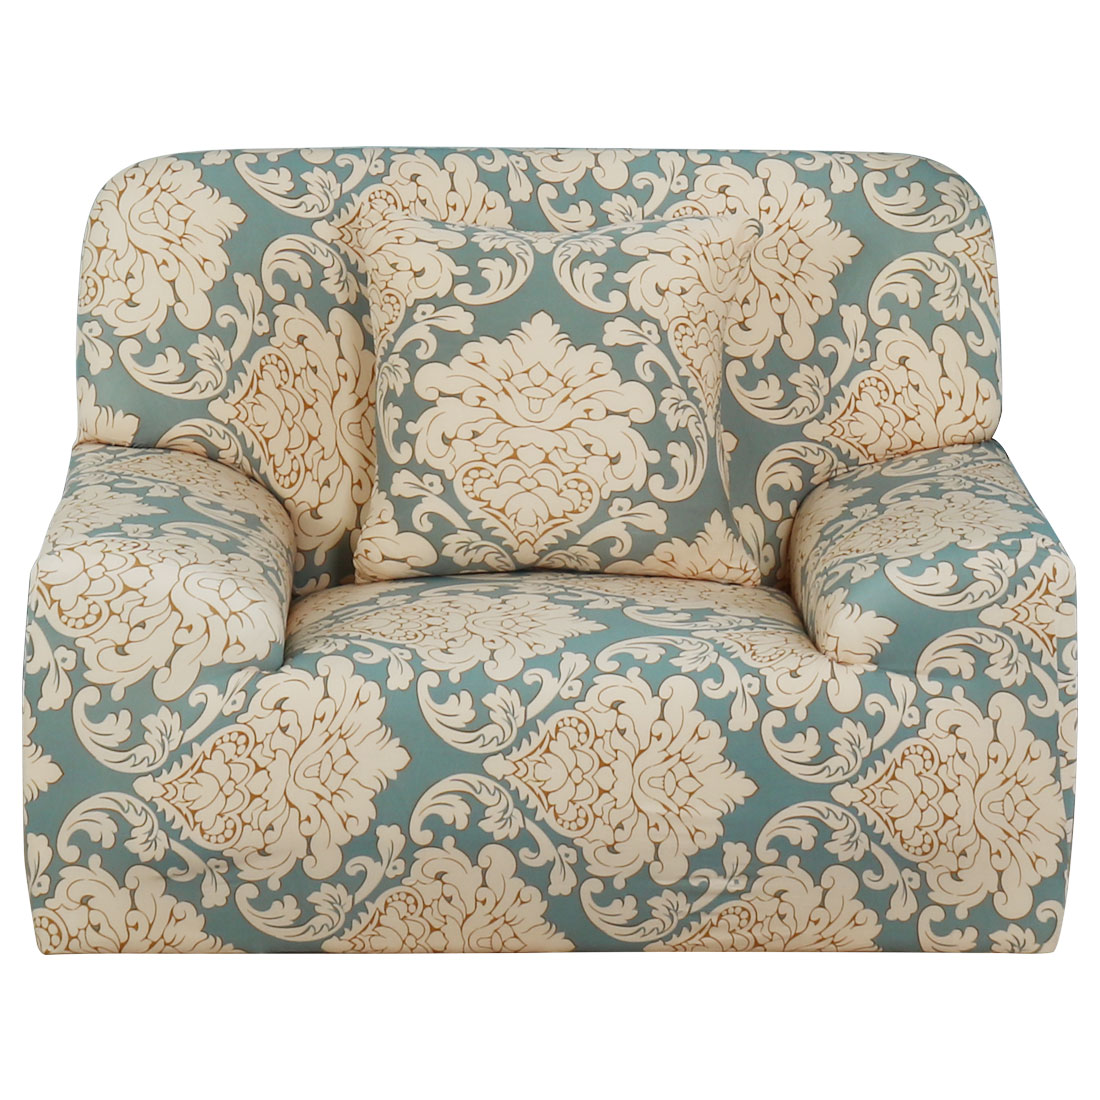 Household Polyester Leave Flower Pattern Elastic Sofa Chair Cover Slipcover Protector 35-55 Inch